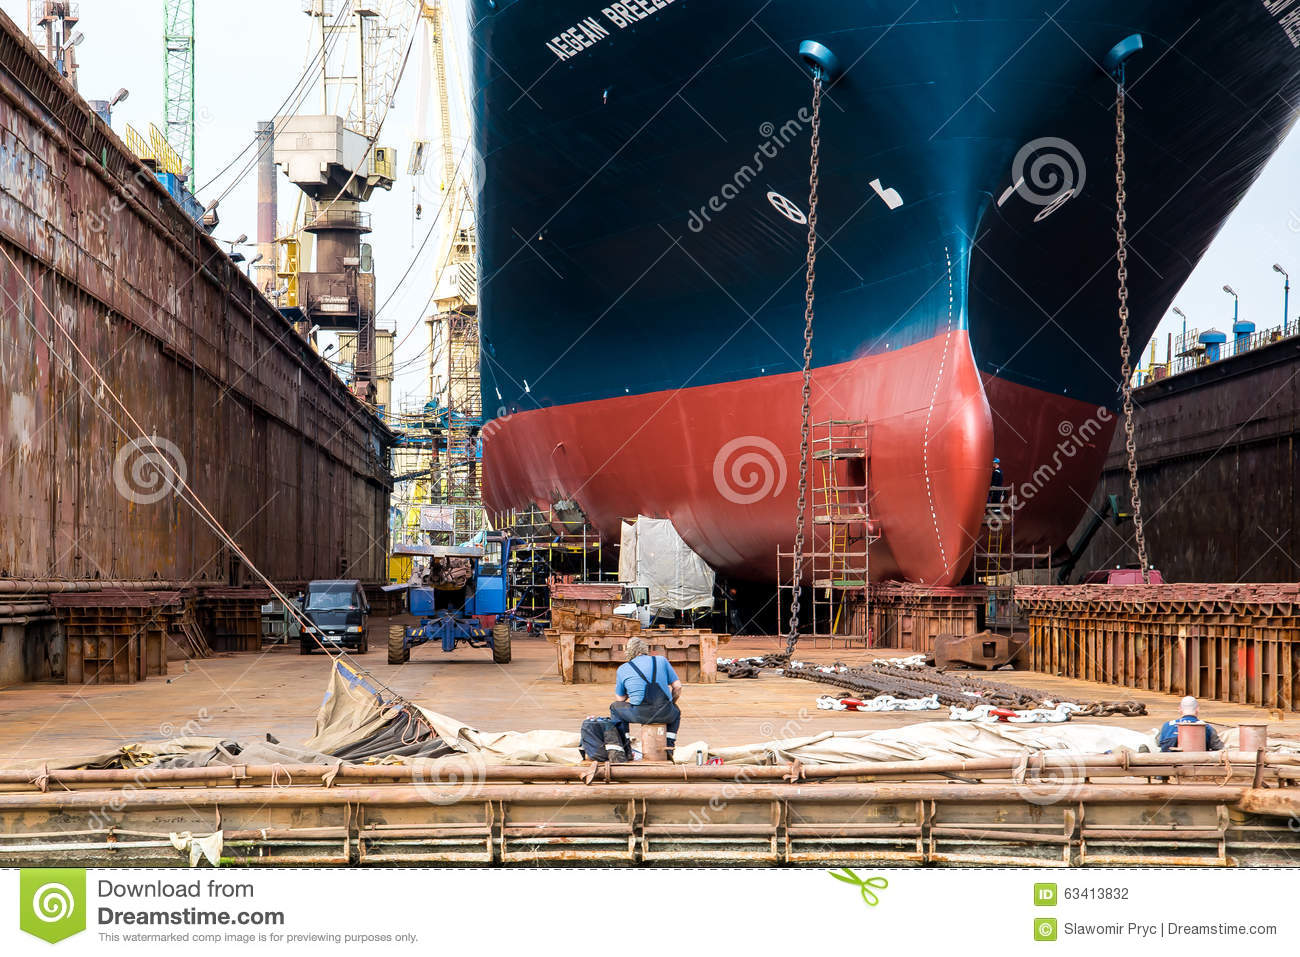 The shipyard workers during a break